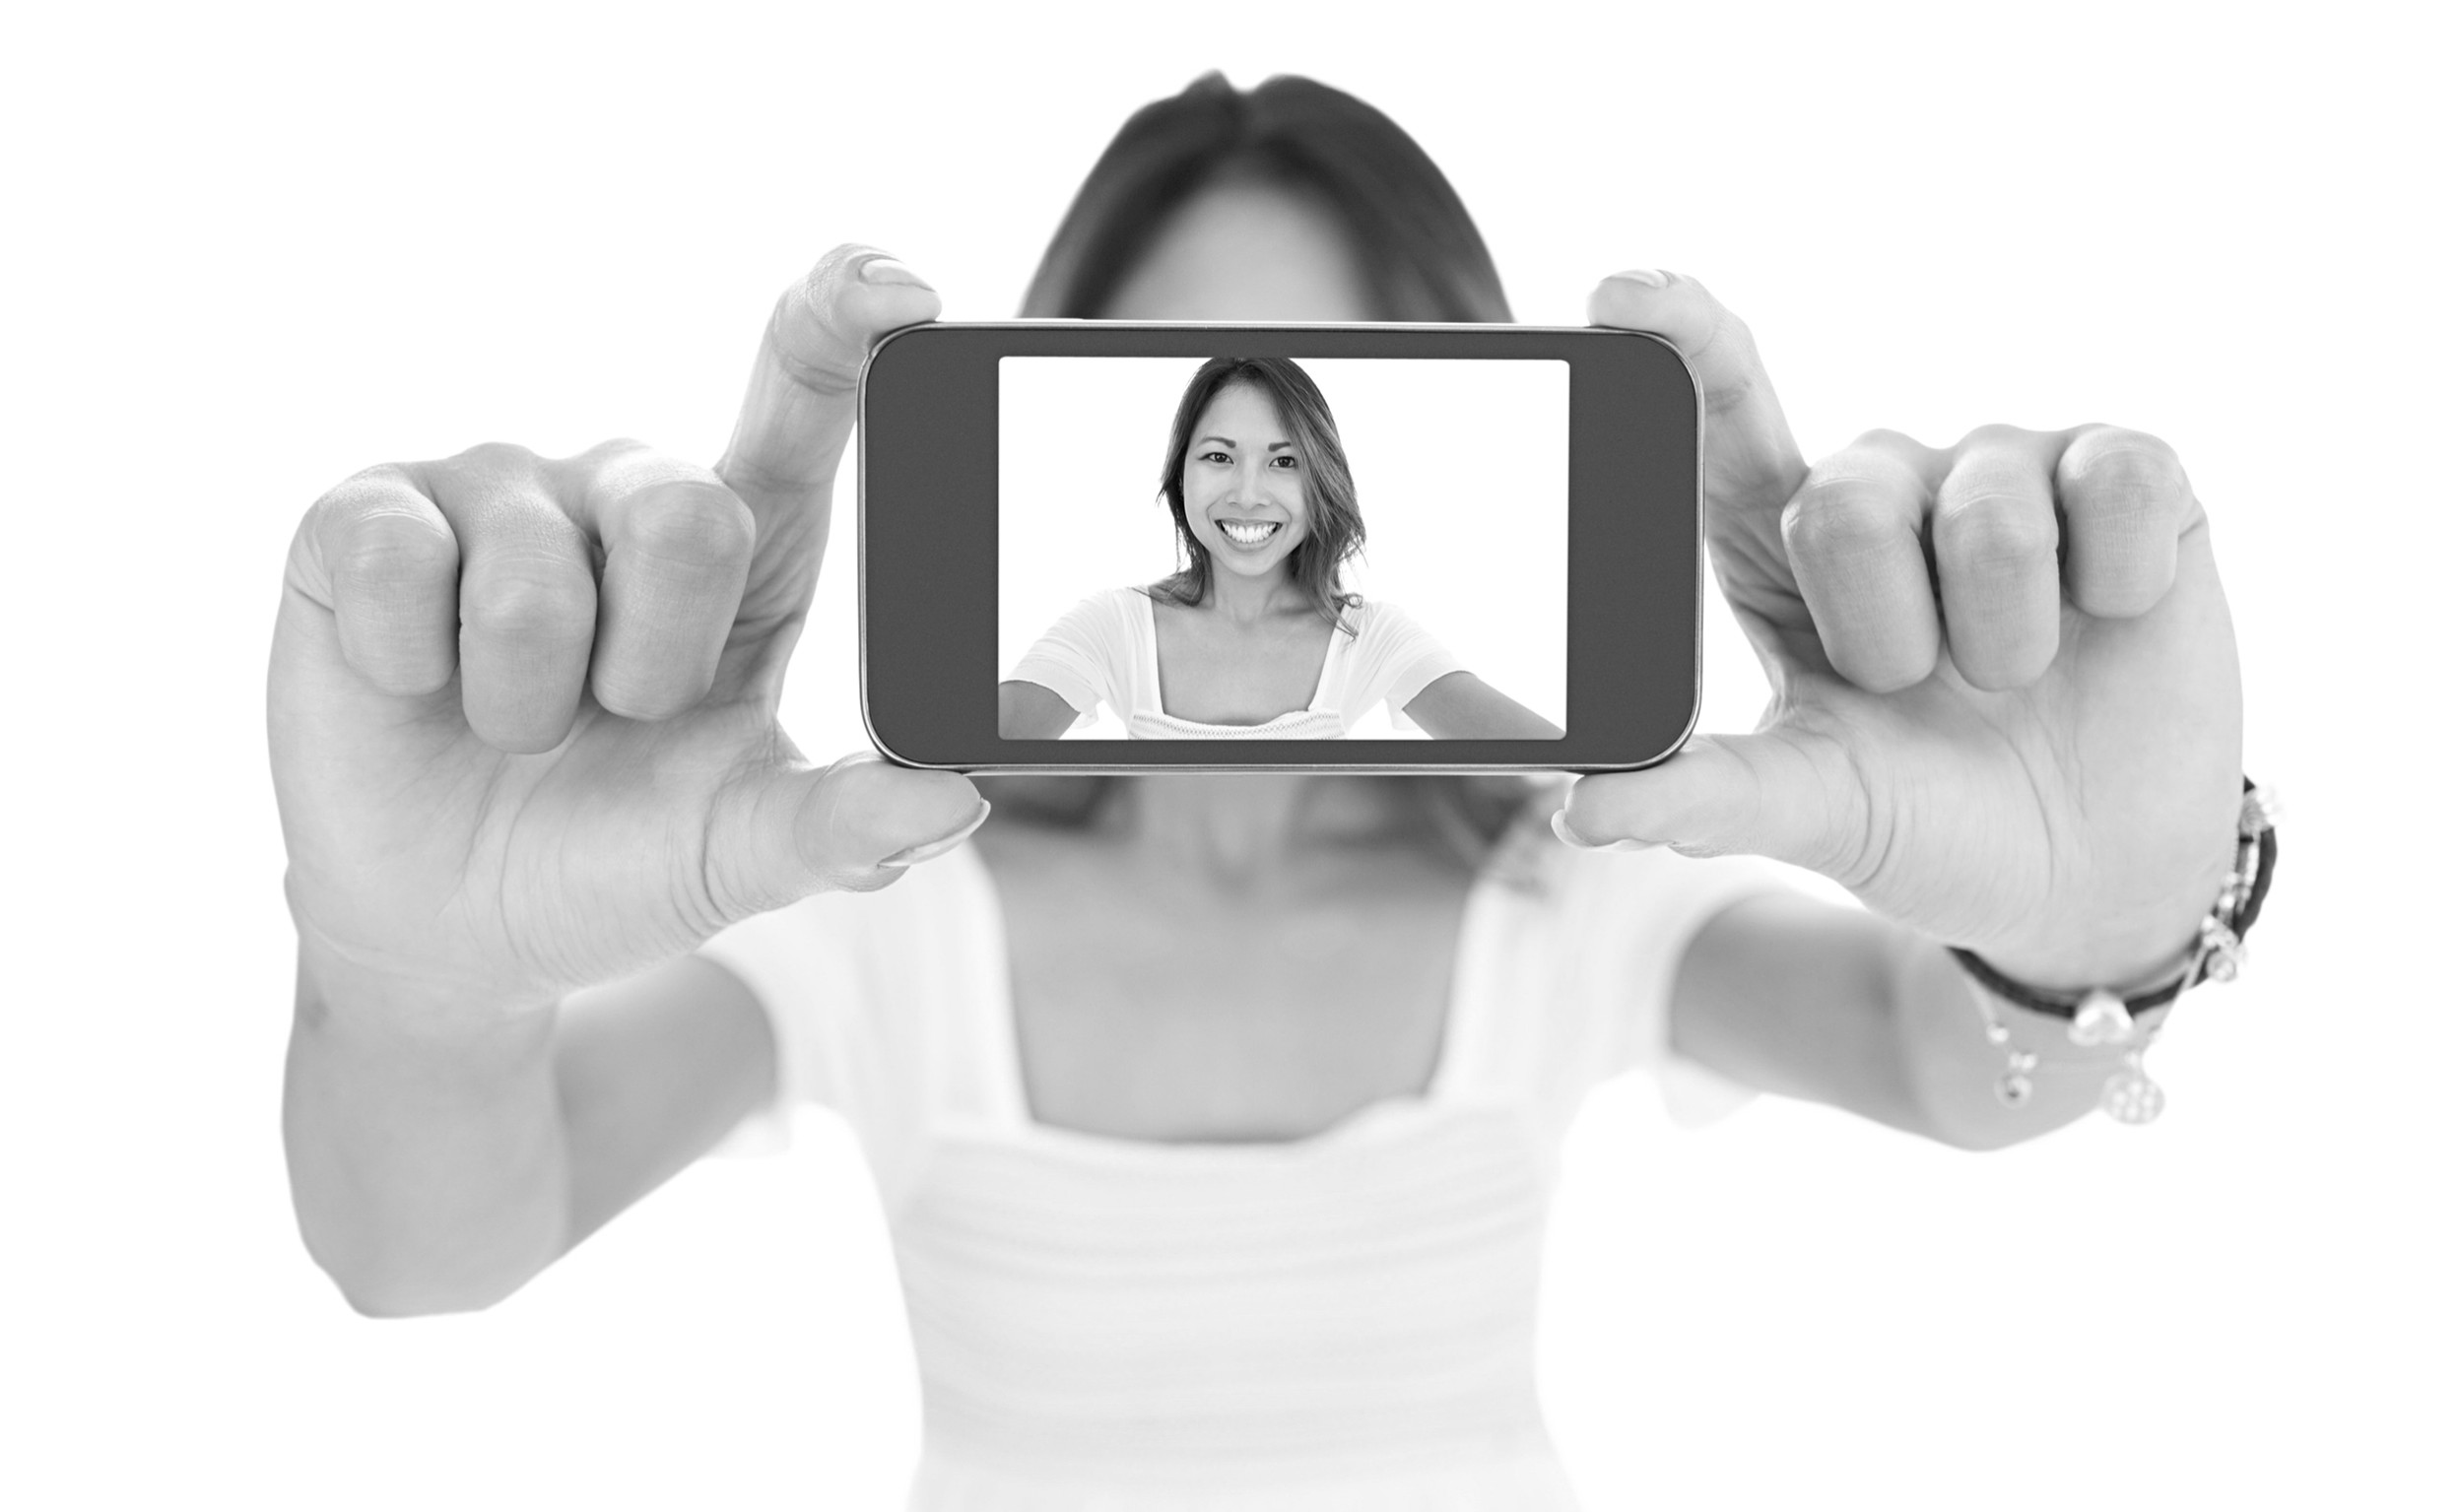 selfie e1458122946514 - Amazon wants to replace 'awkward passwords' with smiling selfies